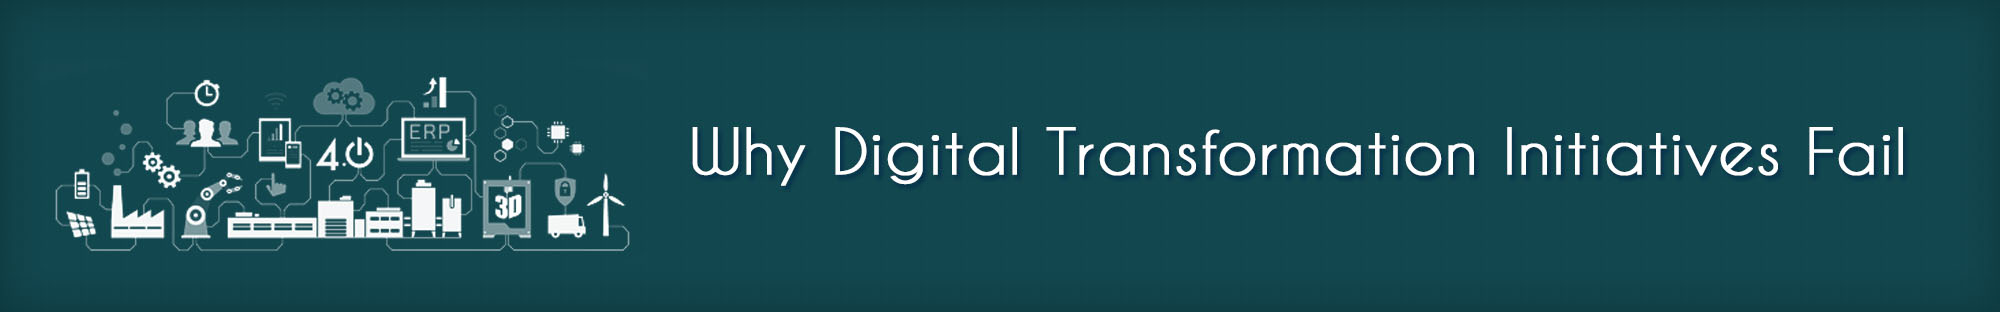 Why-You-May-Not-Succeed-In-Digital-Transformation-Initiatives_Blog_0